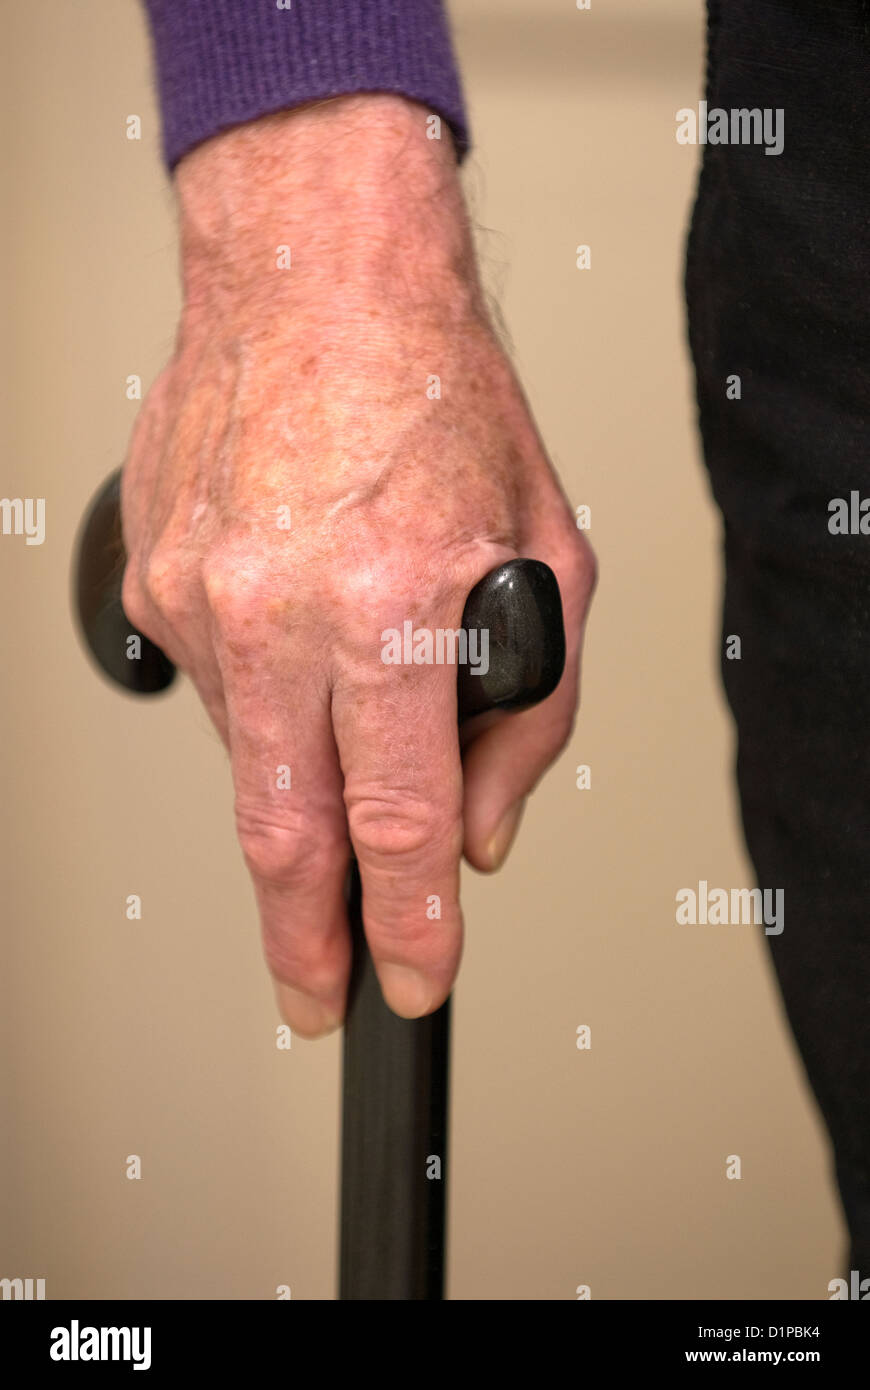 Man with physical disability holding walking stick, London, UK. Model Released (MR) image. - Stock Image